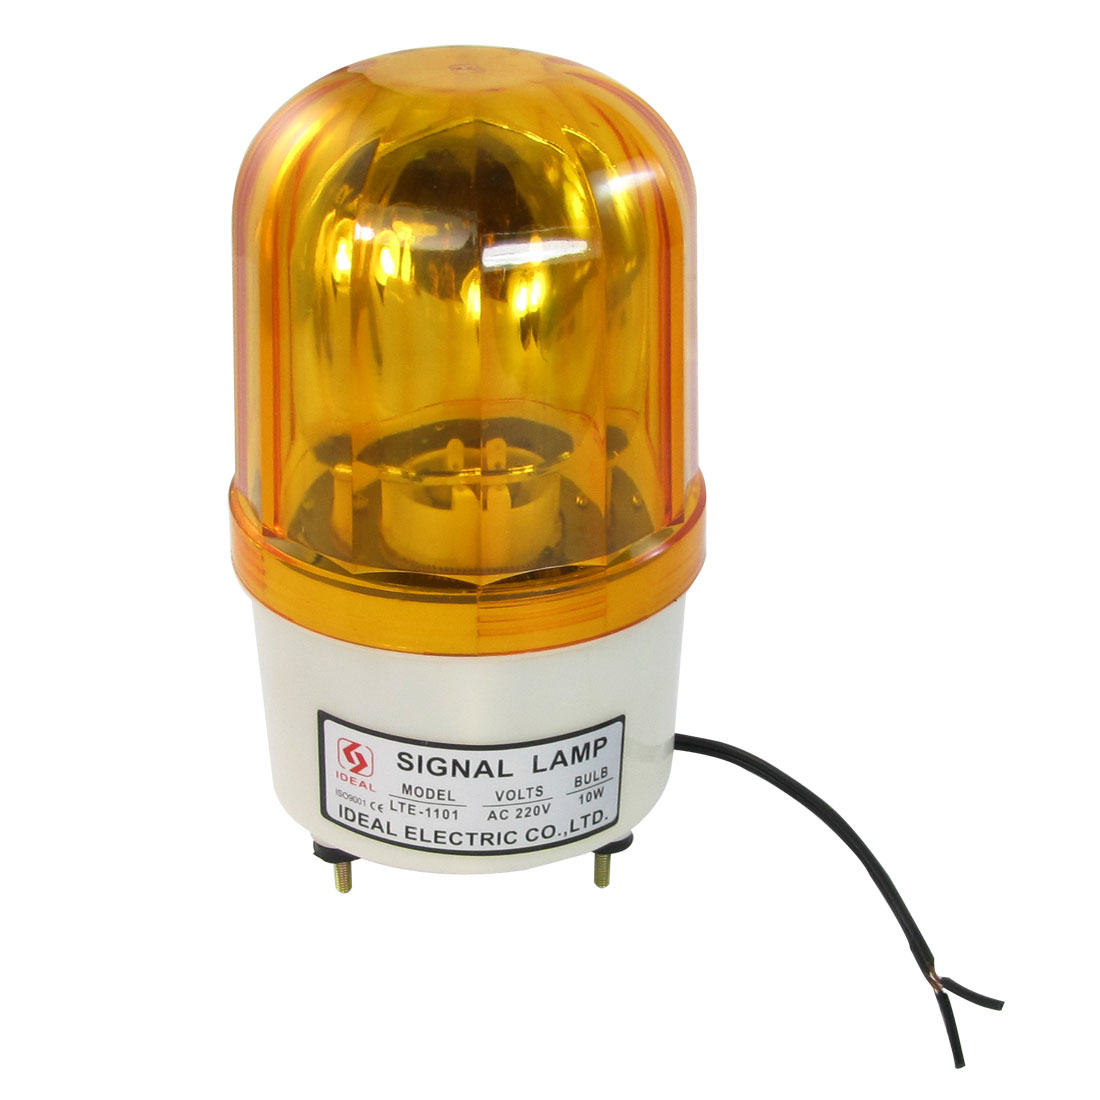 220V AC 10W Industrial Orange Cylinder Signal Tower Light Lamp